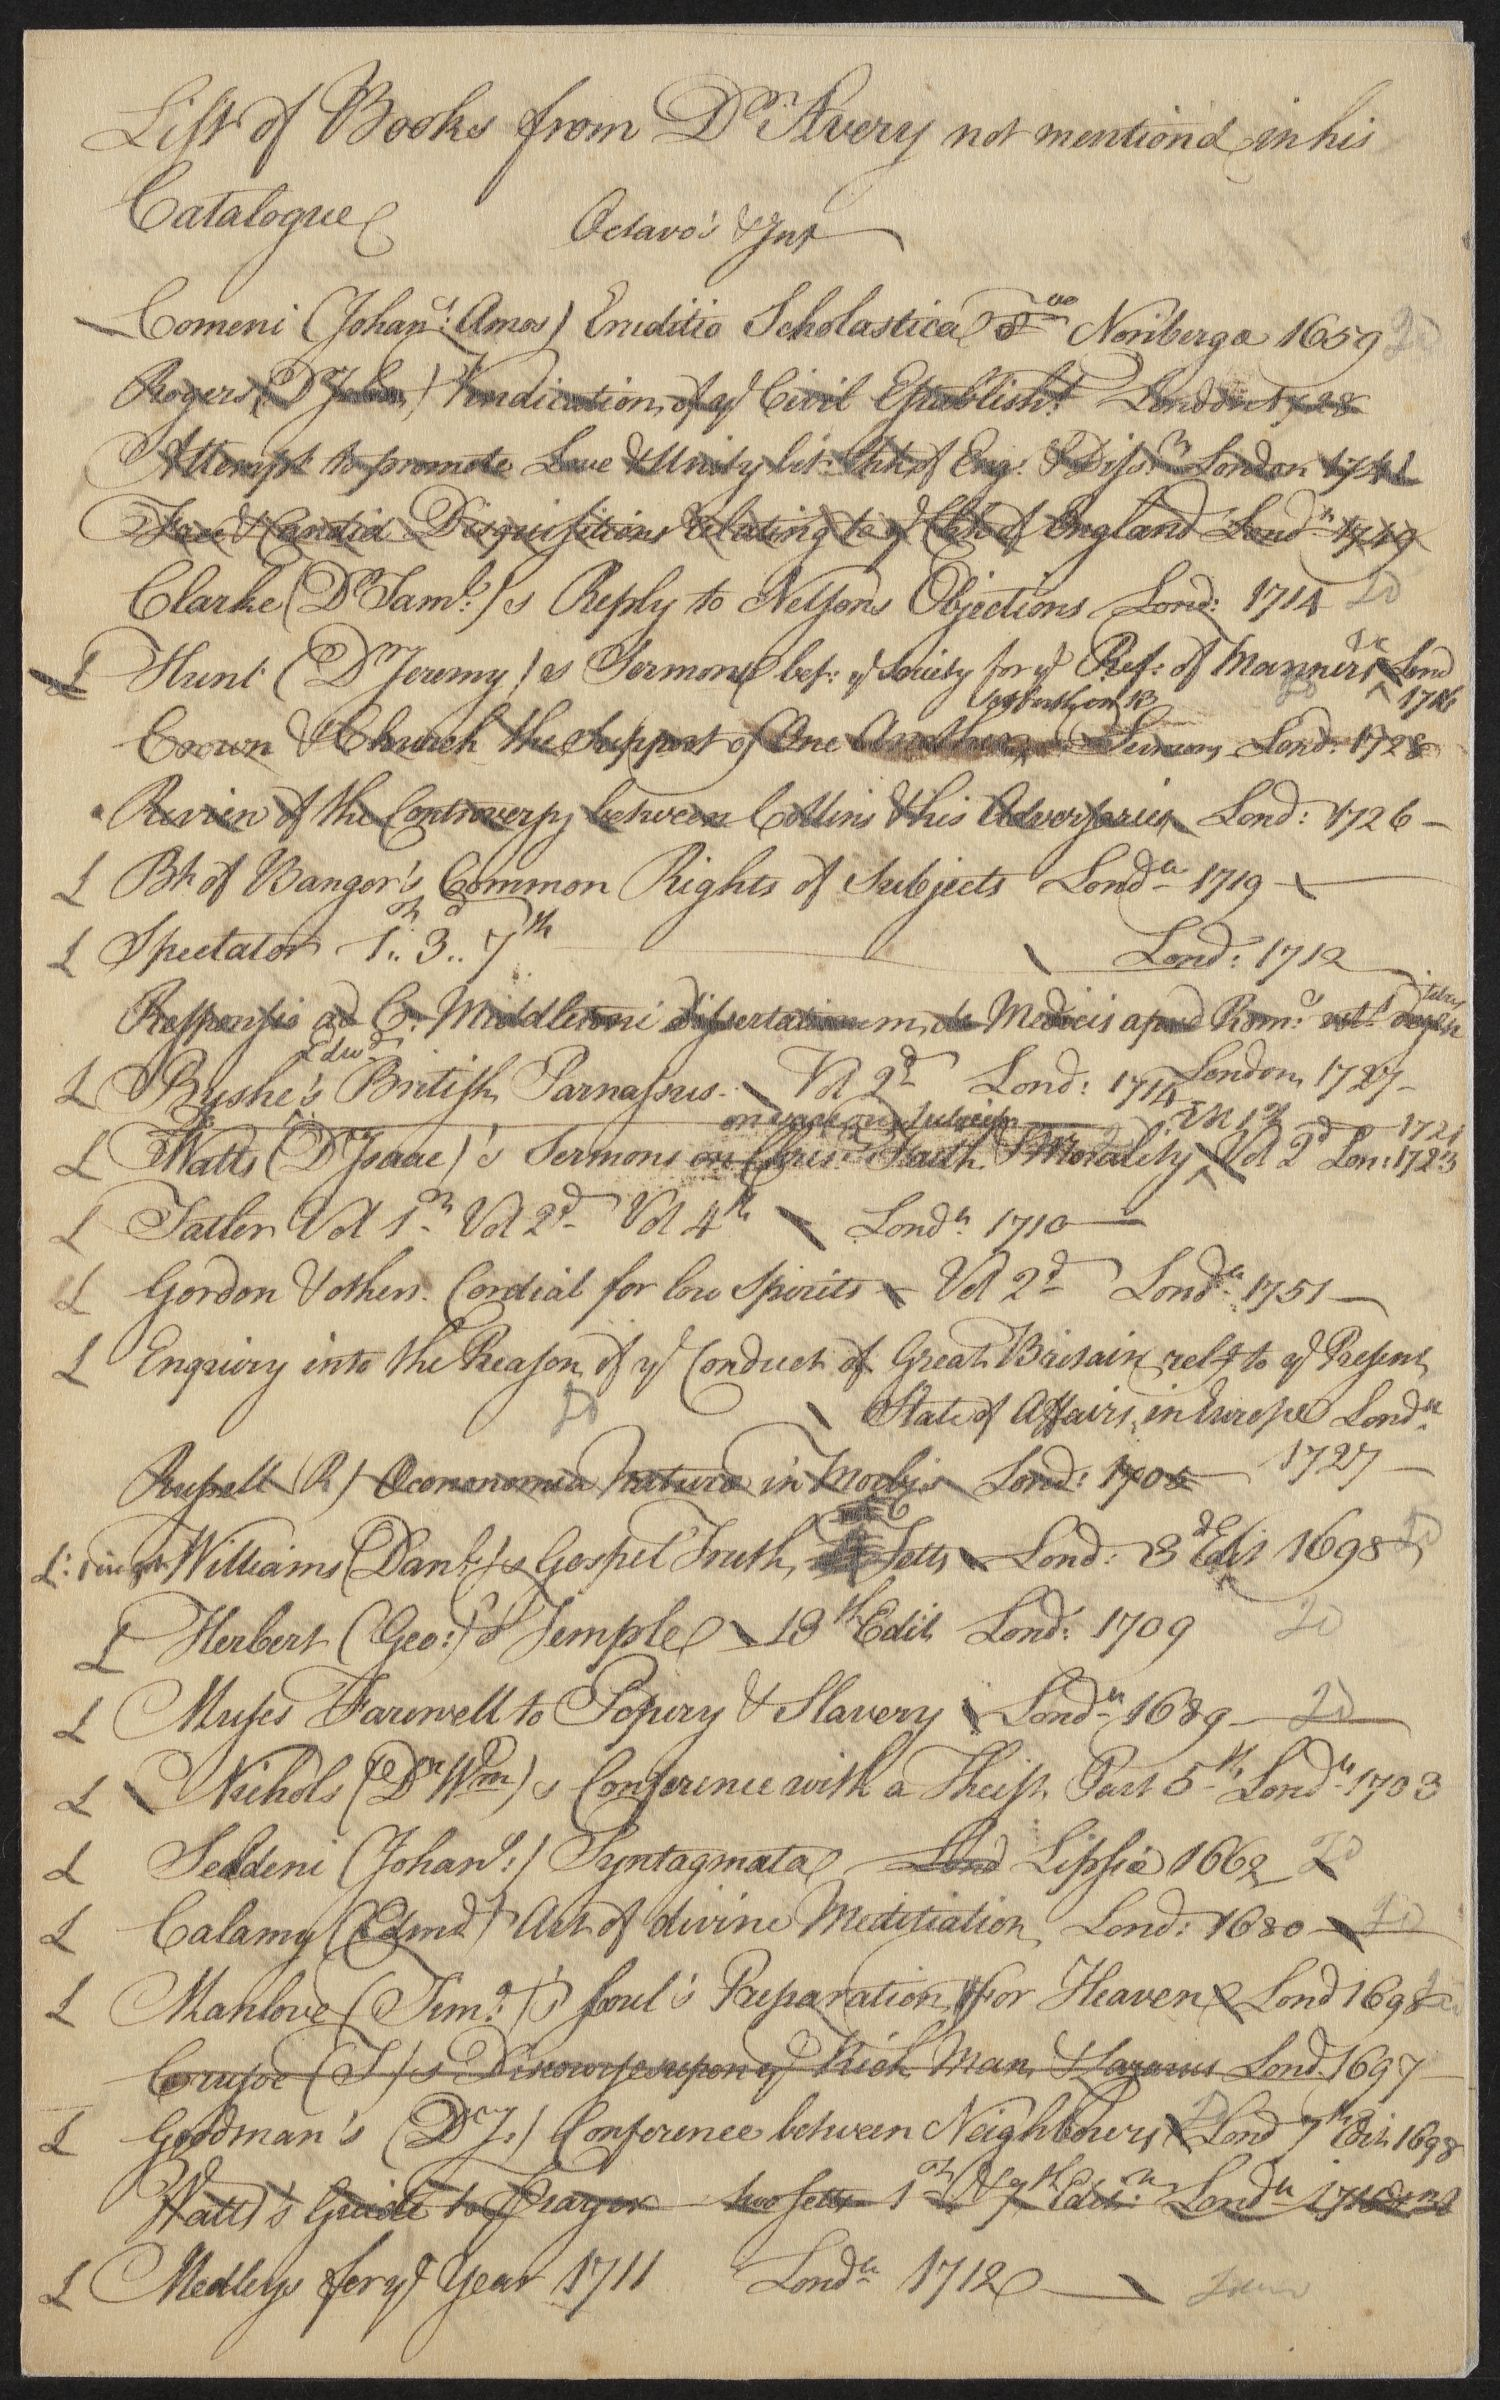 """List of books from Dr. Avery not mentioned in his Catalogue,"" undated"